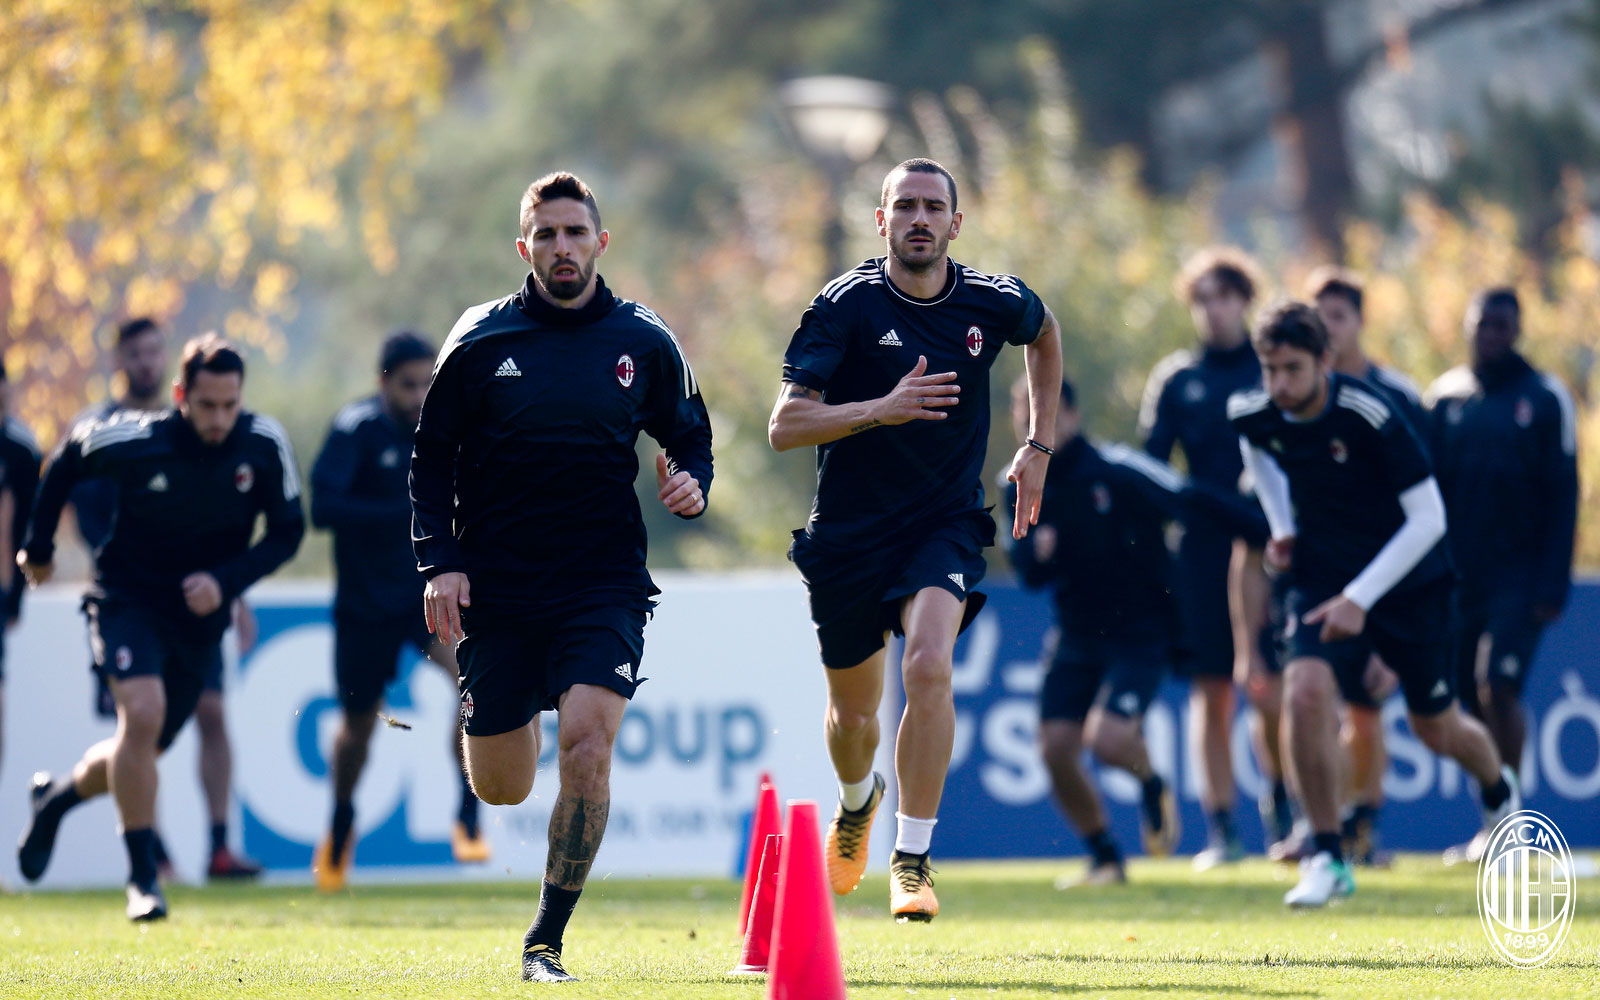 Leonardo Bonucci and Fabio Borini during training at Milanello. (@acmilan.com)